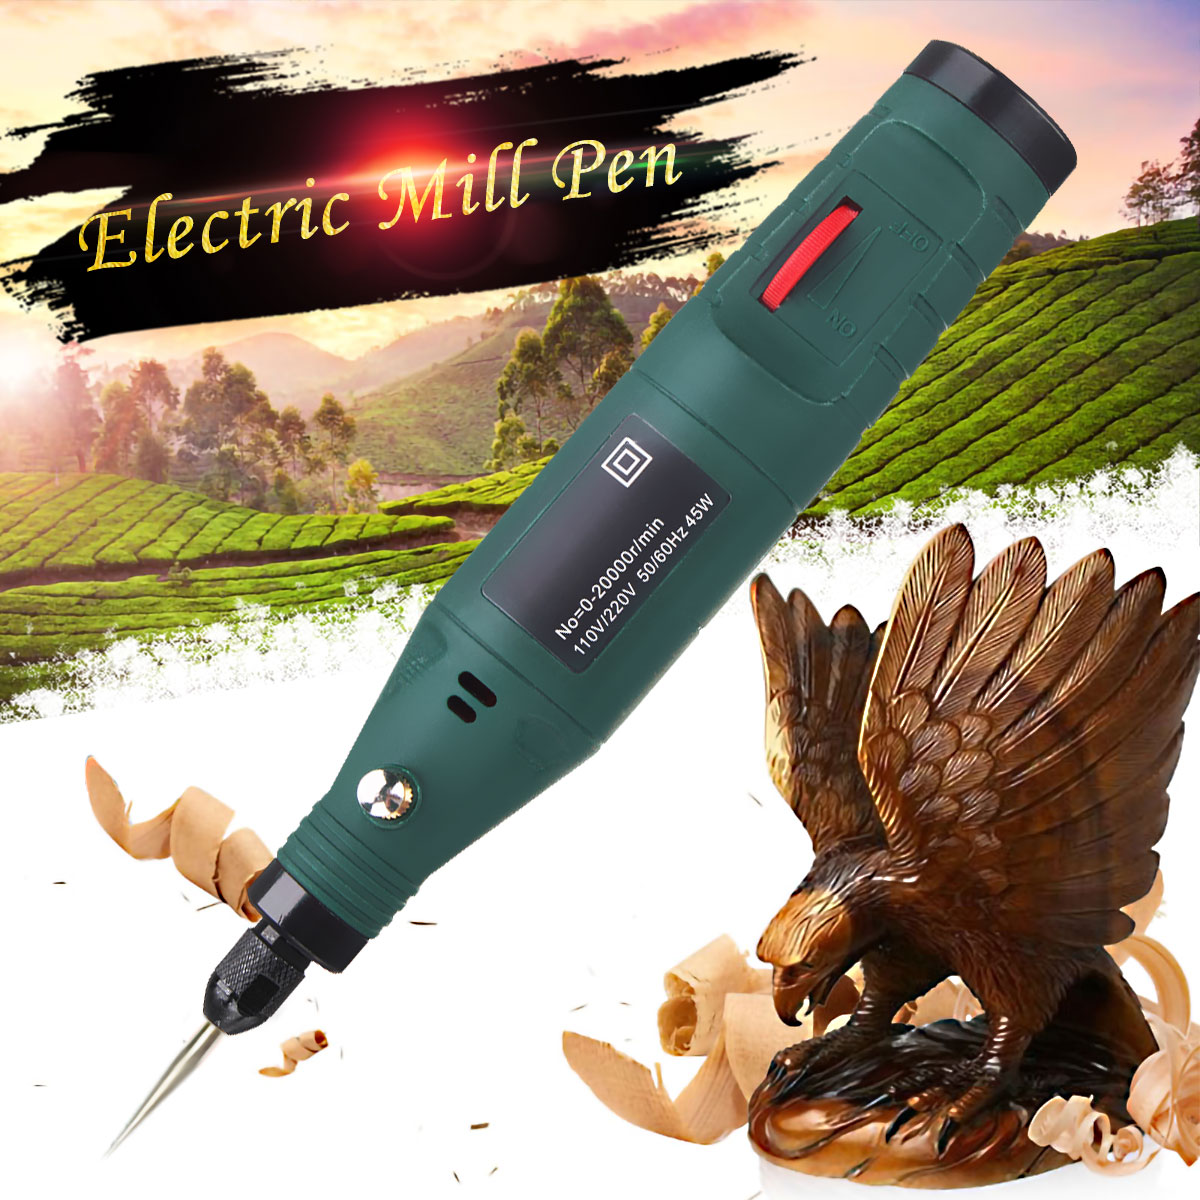 12V 45W Electric Drill Mini Electric Grinding Rotary Tool Variable Speed Hand Carving Engraving Pen Grinder Power Tool